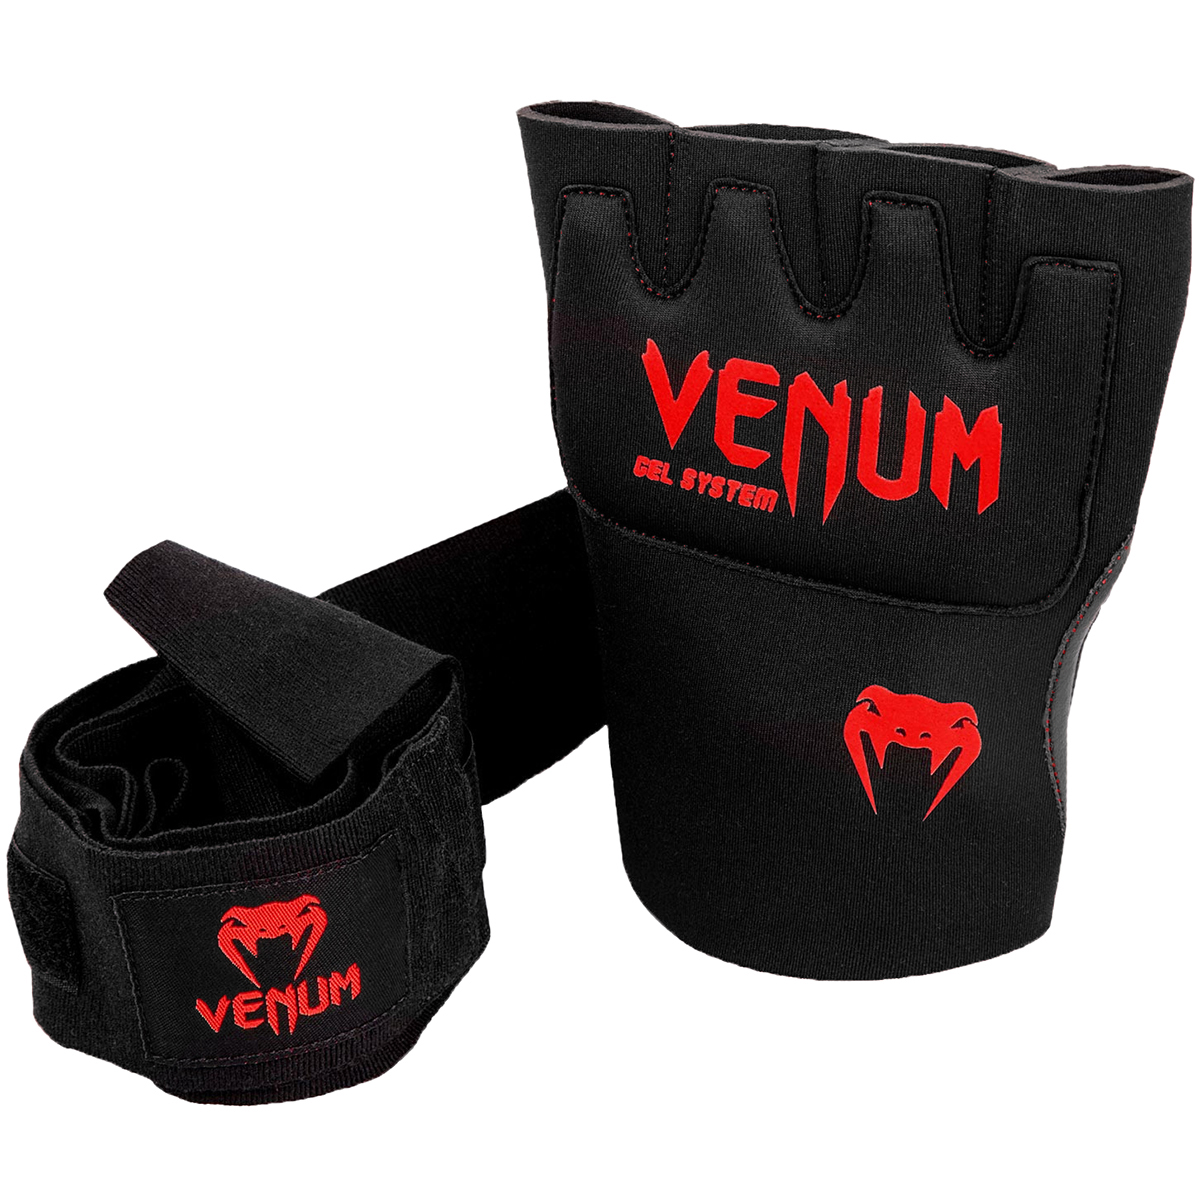 Venum-Kontact-Protective-Shock-Absorbing-Gel-MMA-Glove-Wraps thumbnail 10